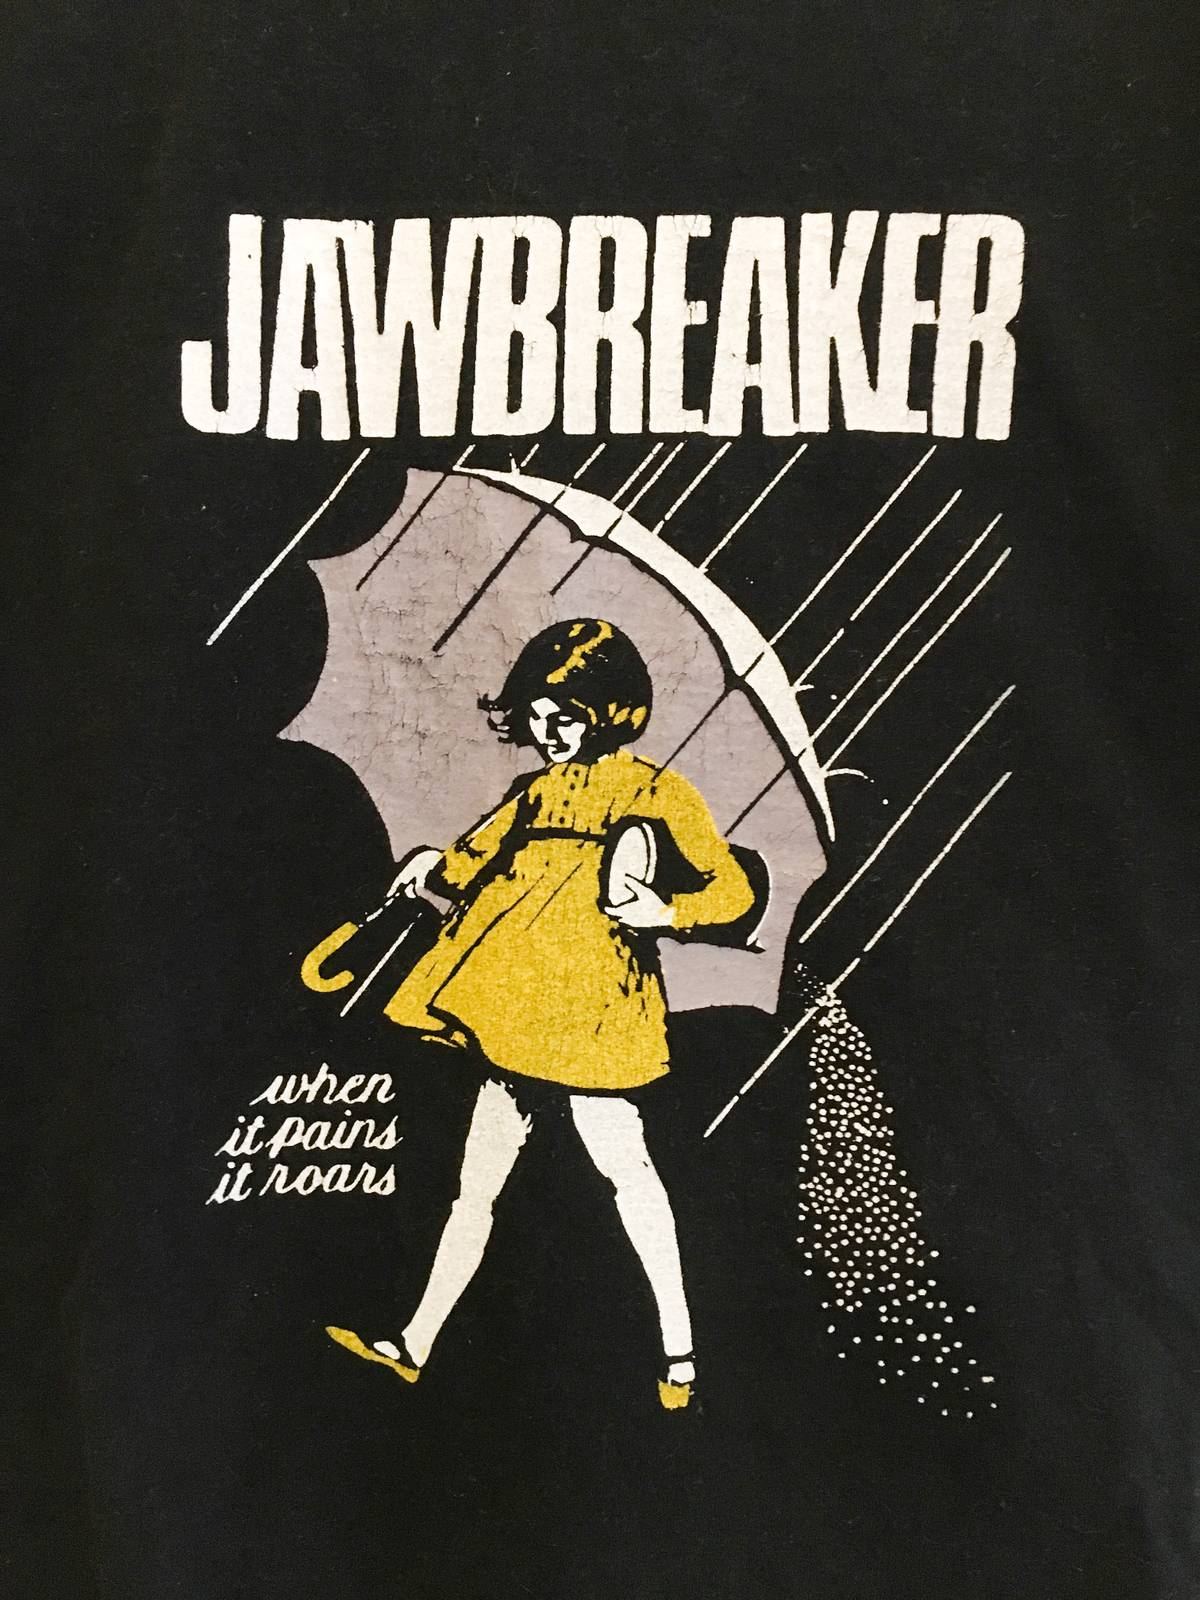 morton salt girl on Tumblr |Morton Salt Jawbreaker